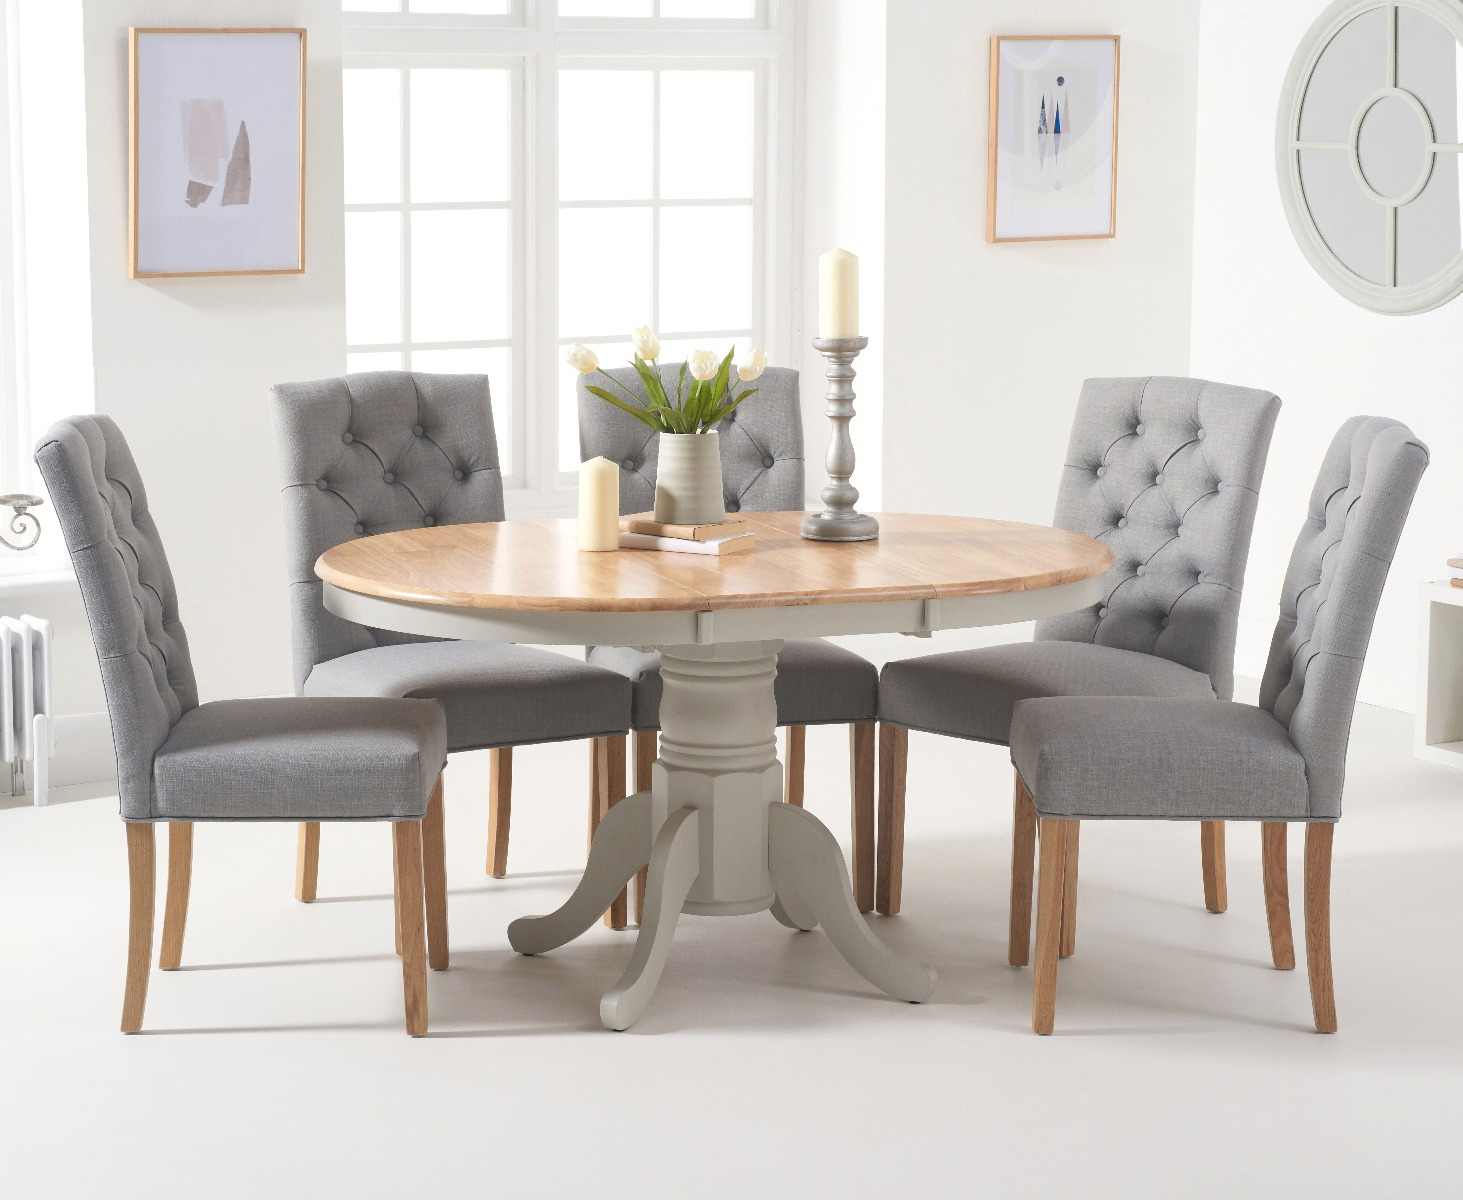 Enjoyable Epsom Oak And Grey Pedestal Extending Dining Table With Claudia Grey Fabric Dining Chairs Andrewgaddart Wooden Chair Designs For Living Room Andrewgaddartcom